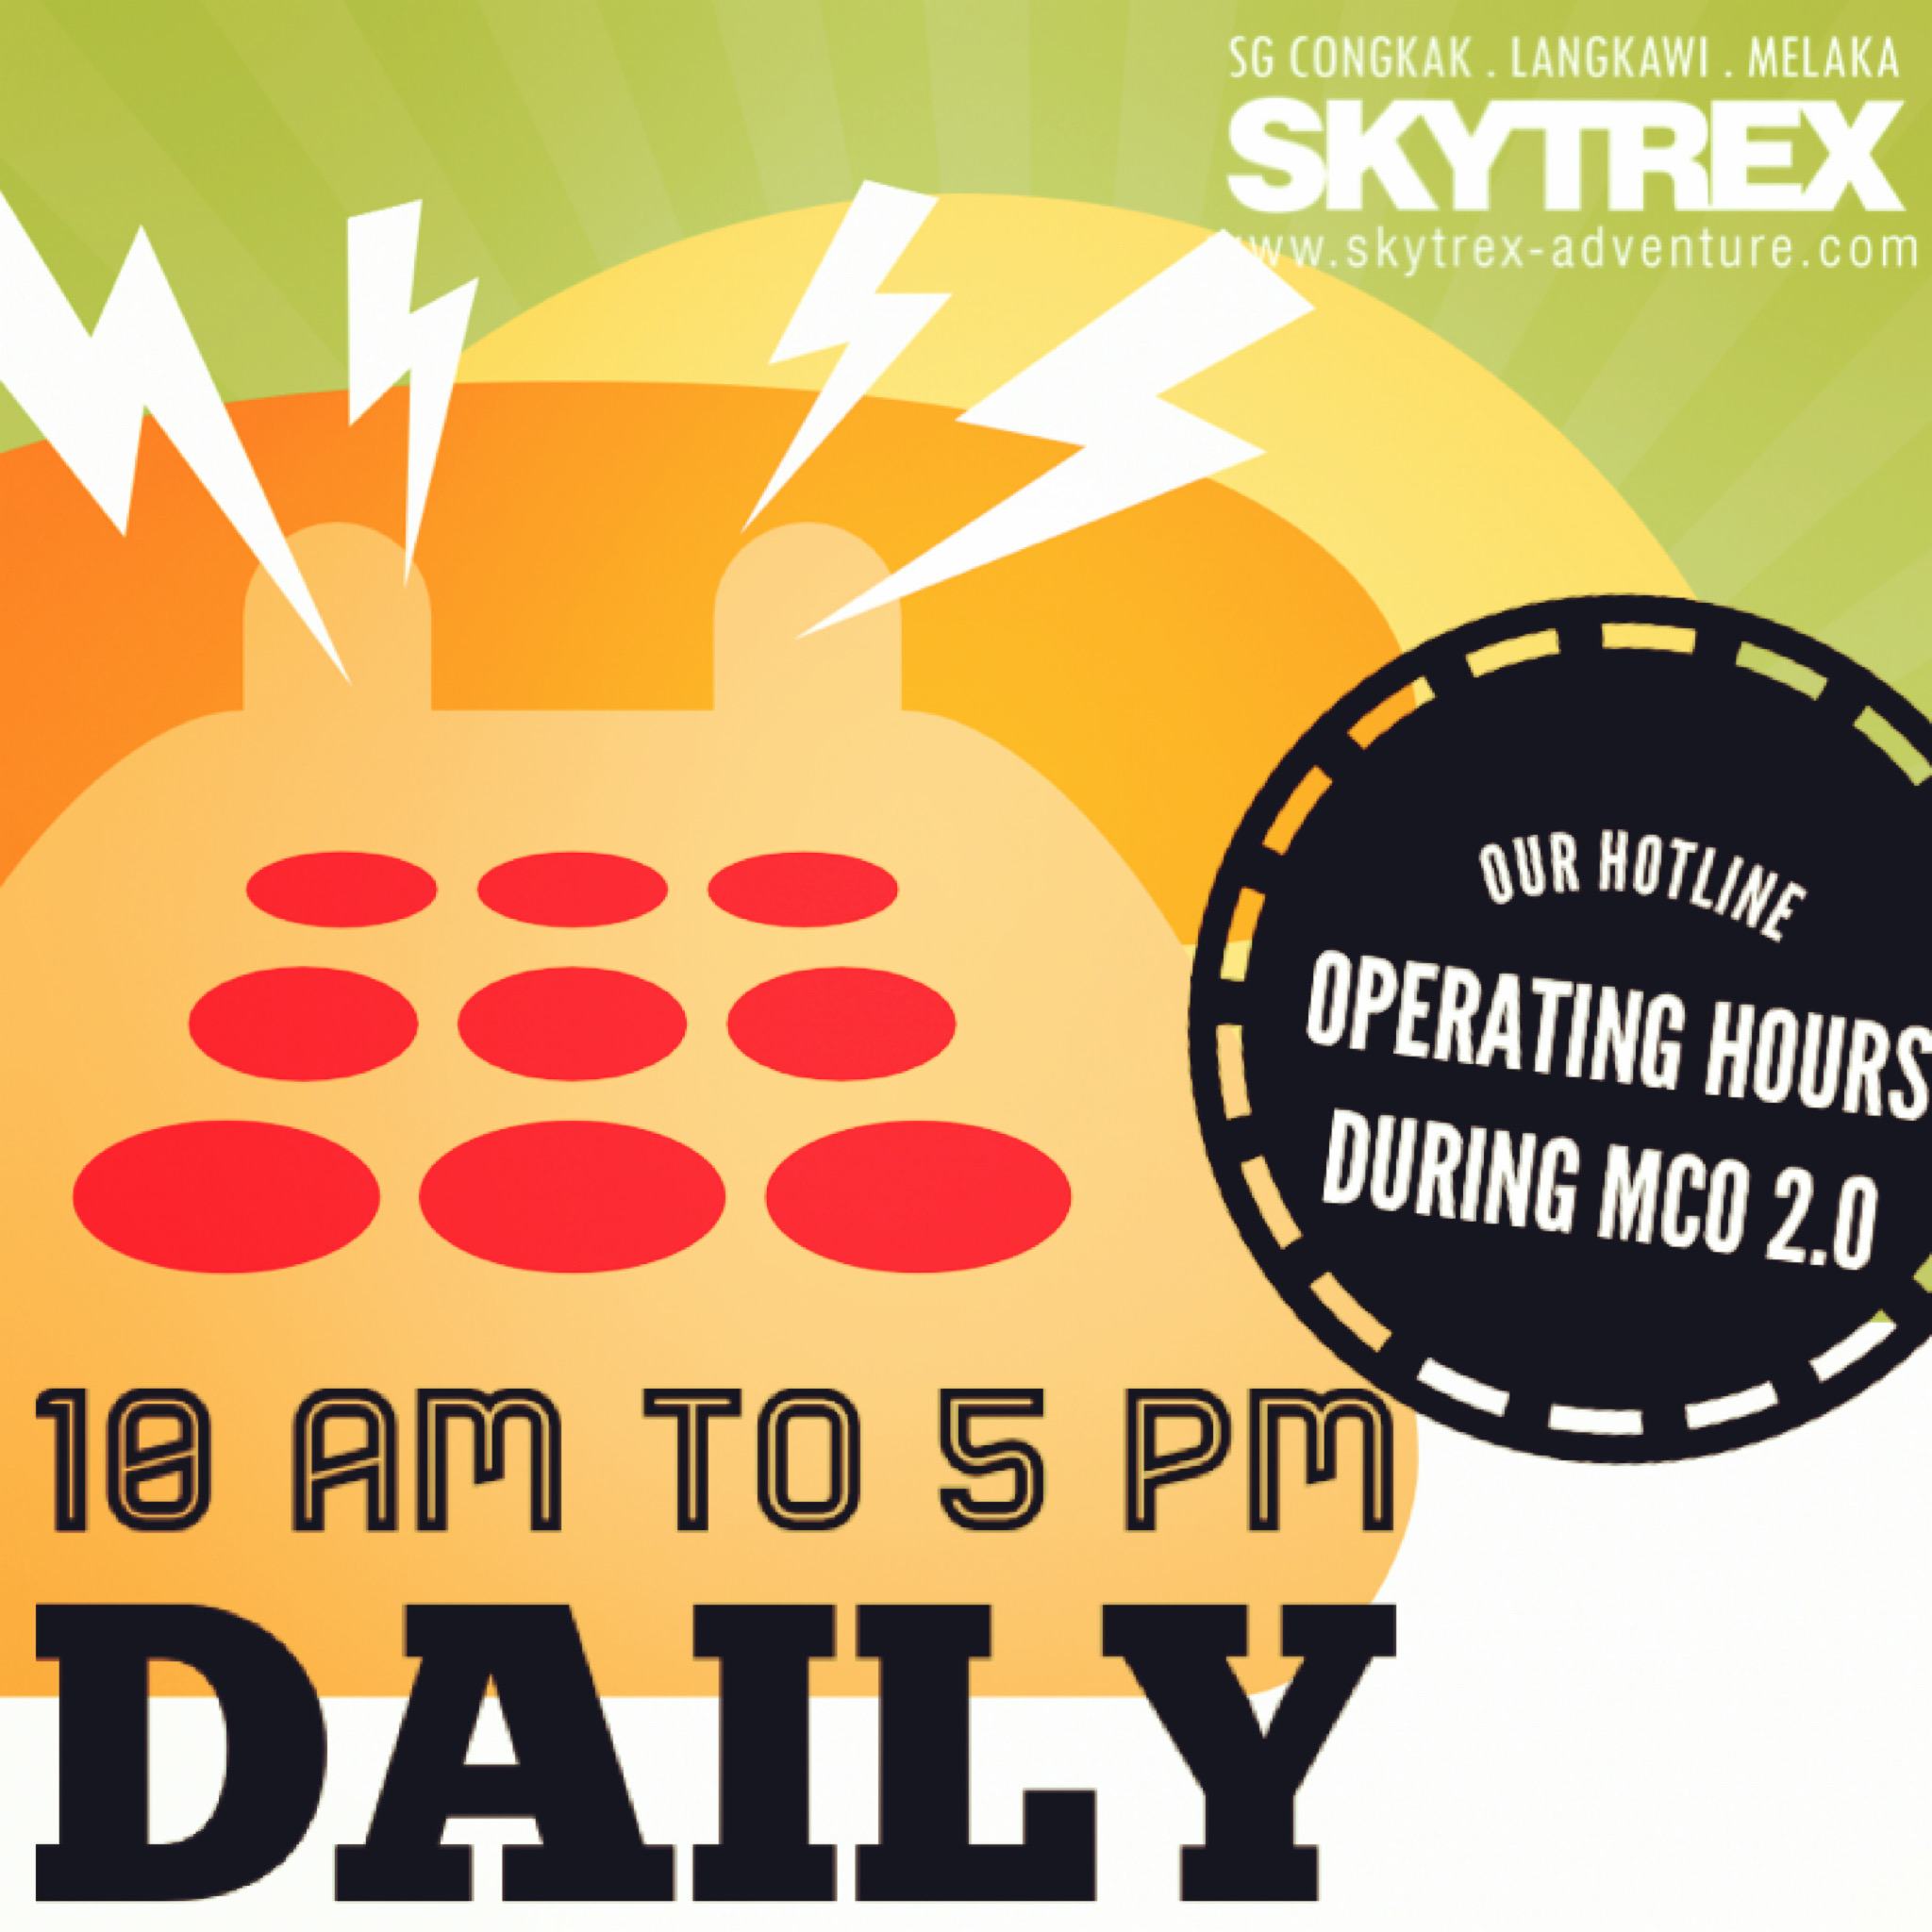 Hotline Operating Hours